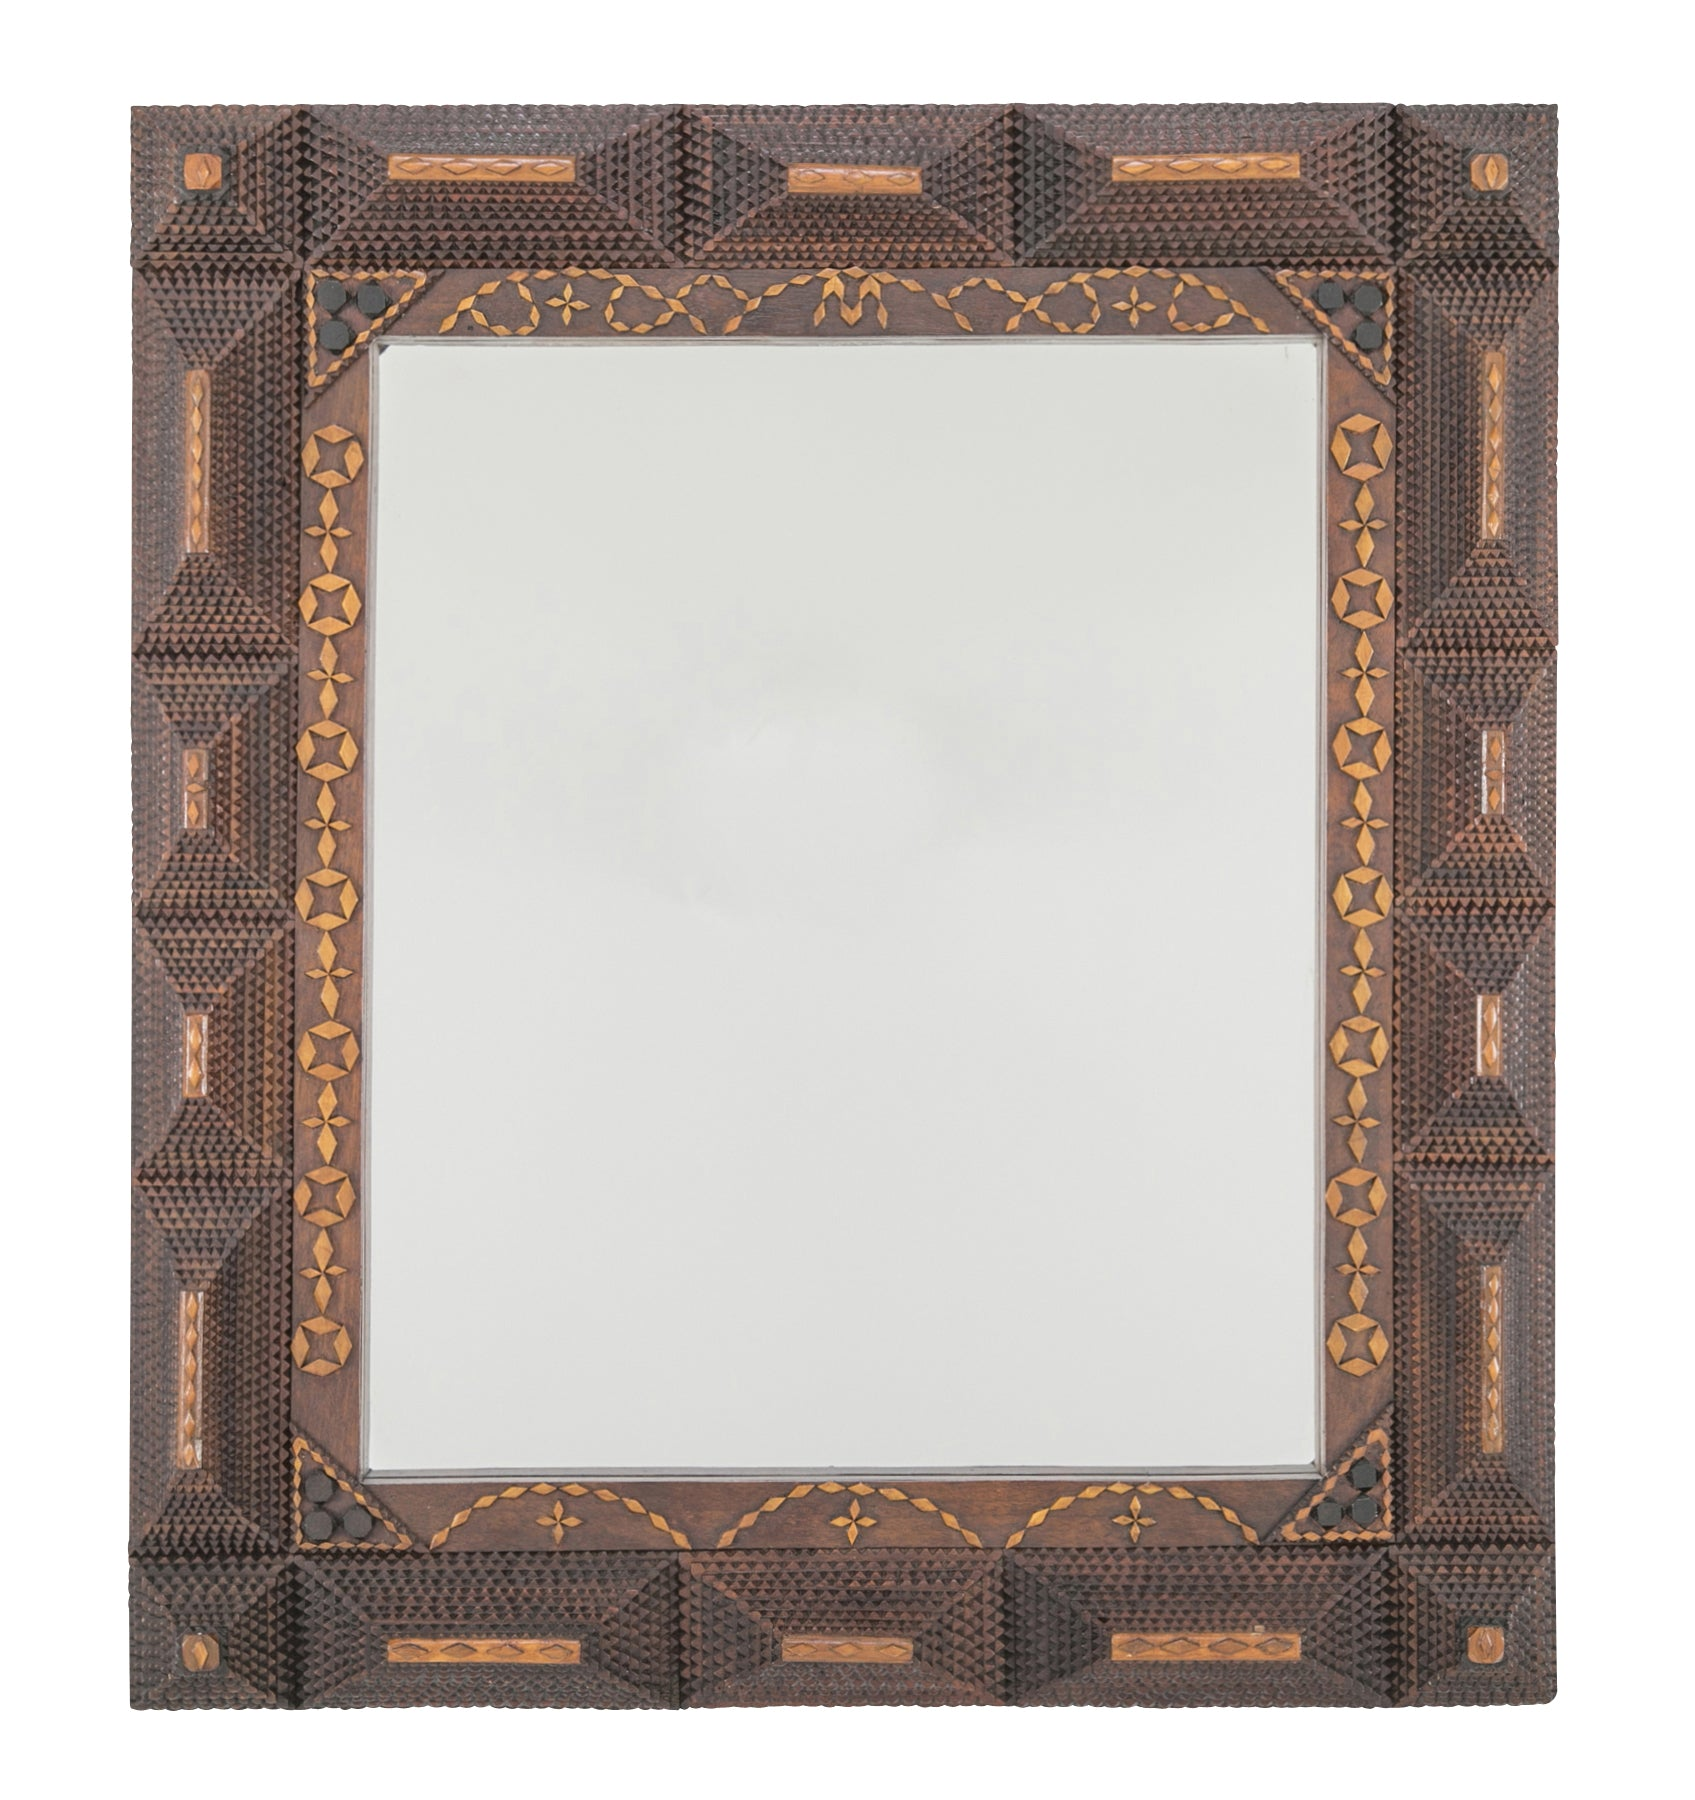 Tramp Art Frame with Mirror – Avery & Dash Collections